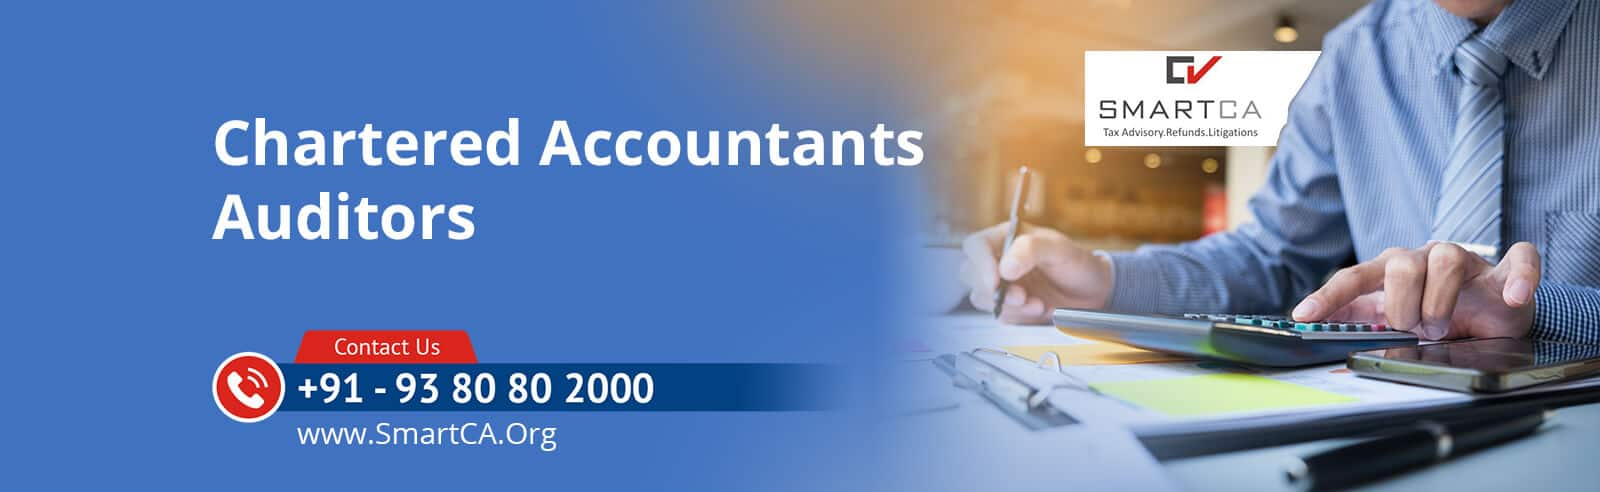 Auditors in Chennai Royapettah